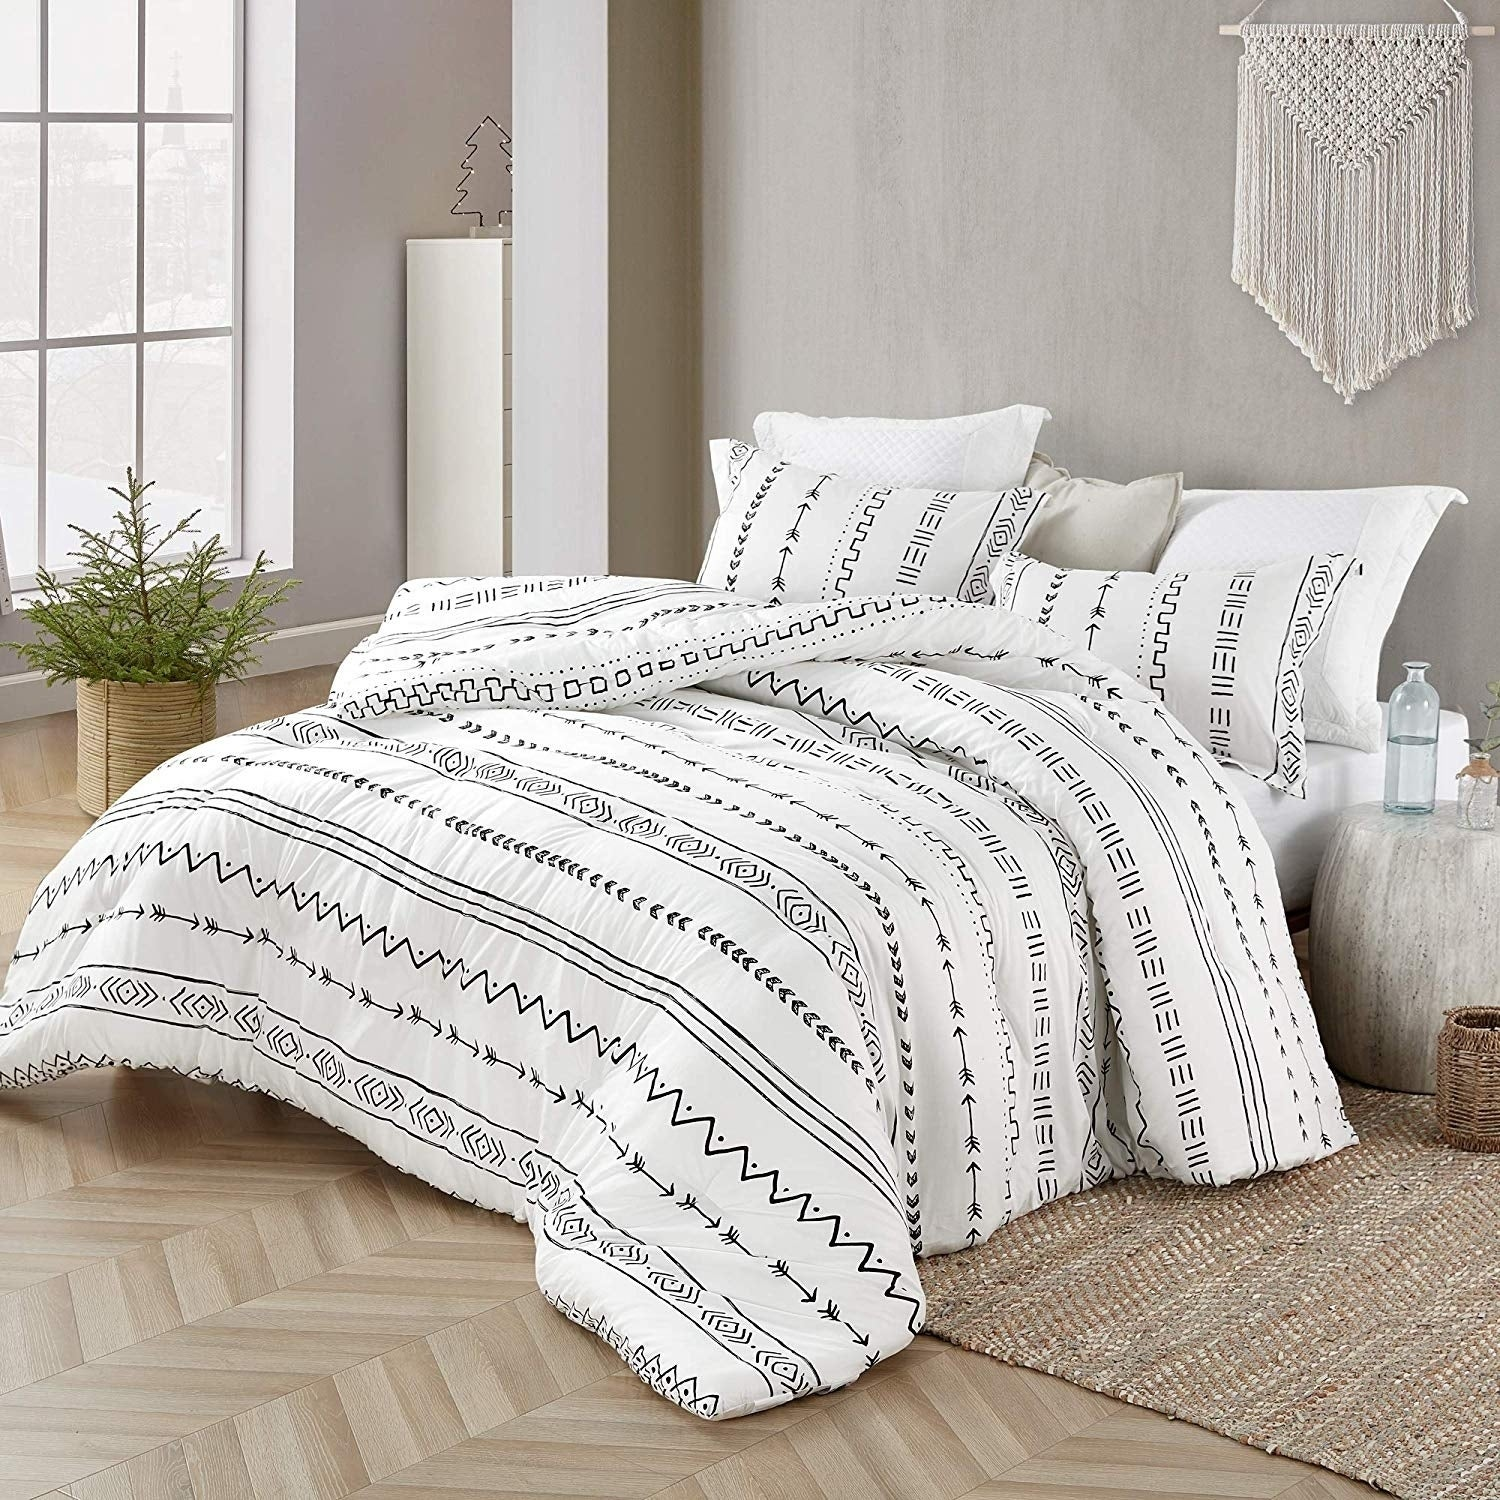 Arrow Black And White Comforter 100 Cotton On Sale Overstock 29295600